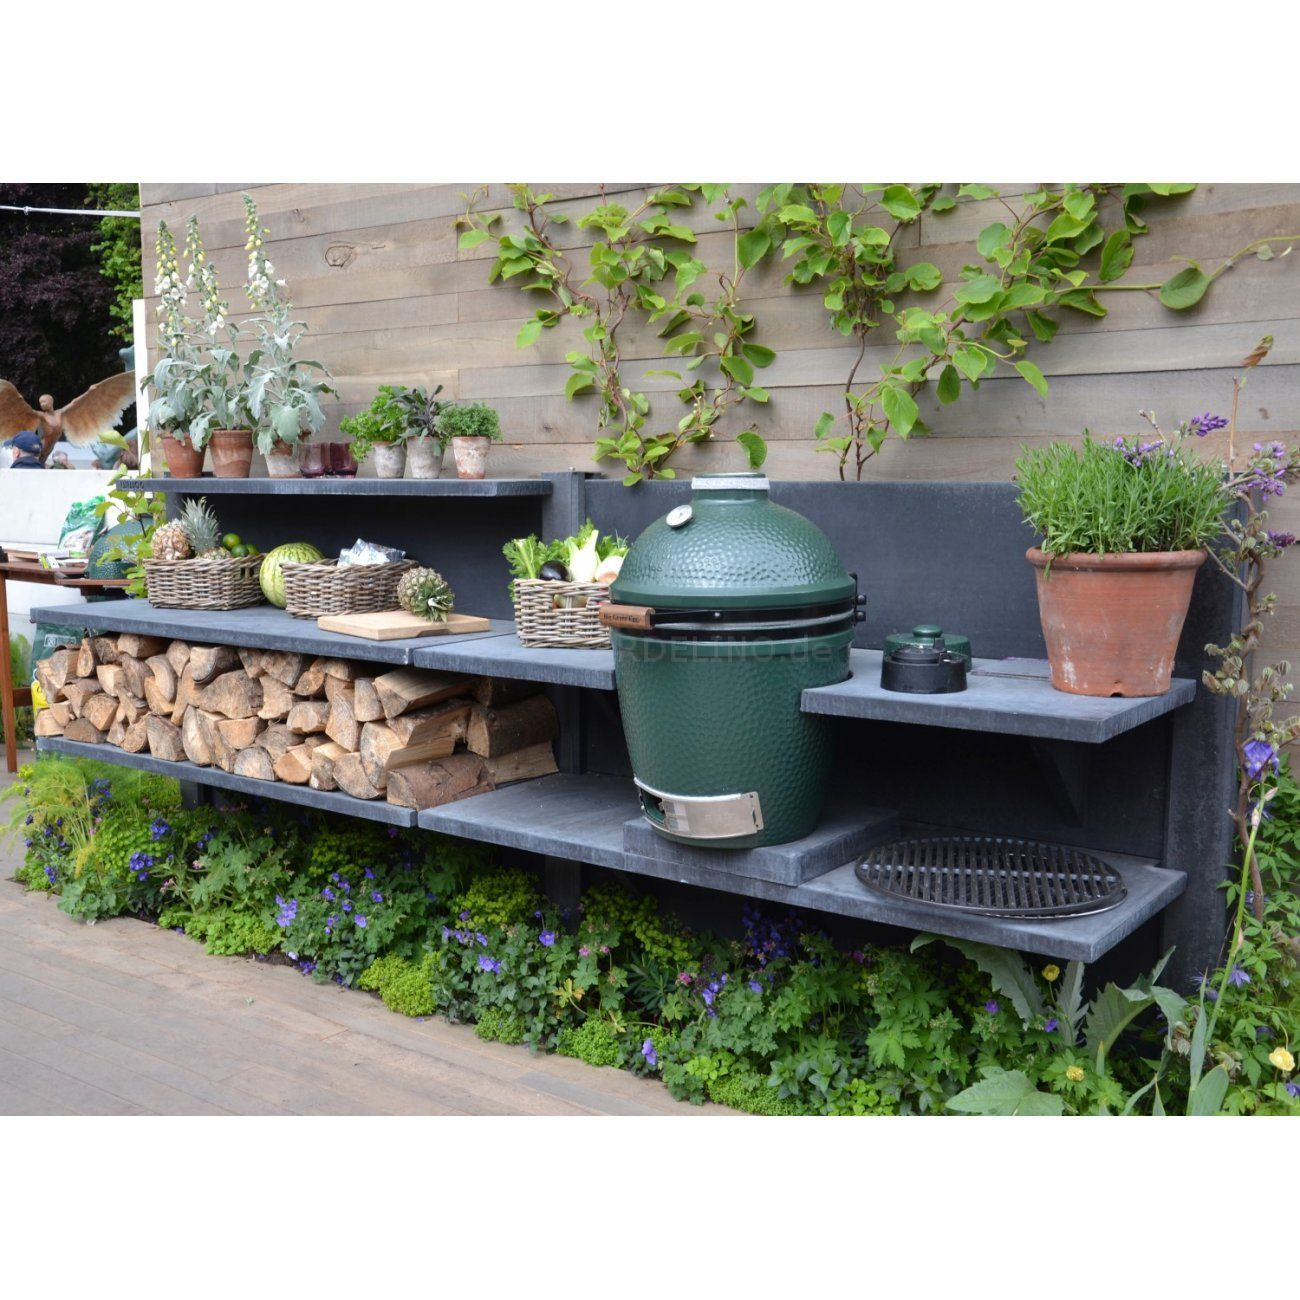 Outdoor Küche Beton Modulare Beton Outdoor Küche Outdoor Kitchen Ideas Pinterest